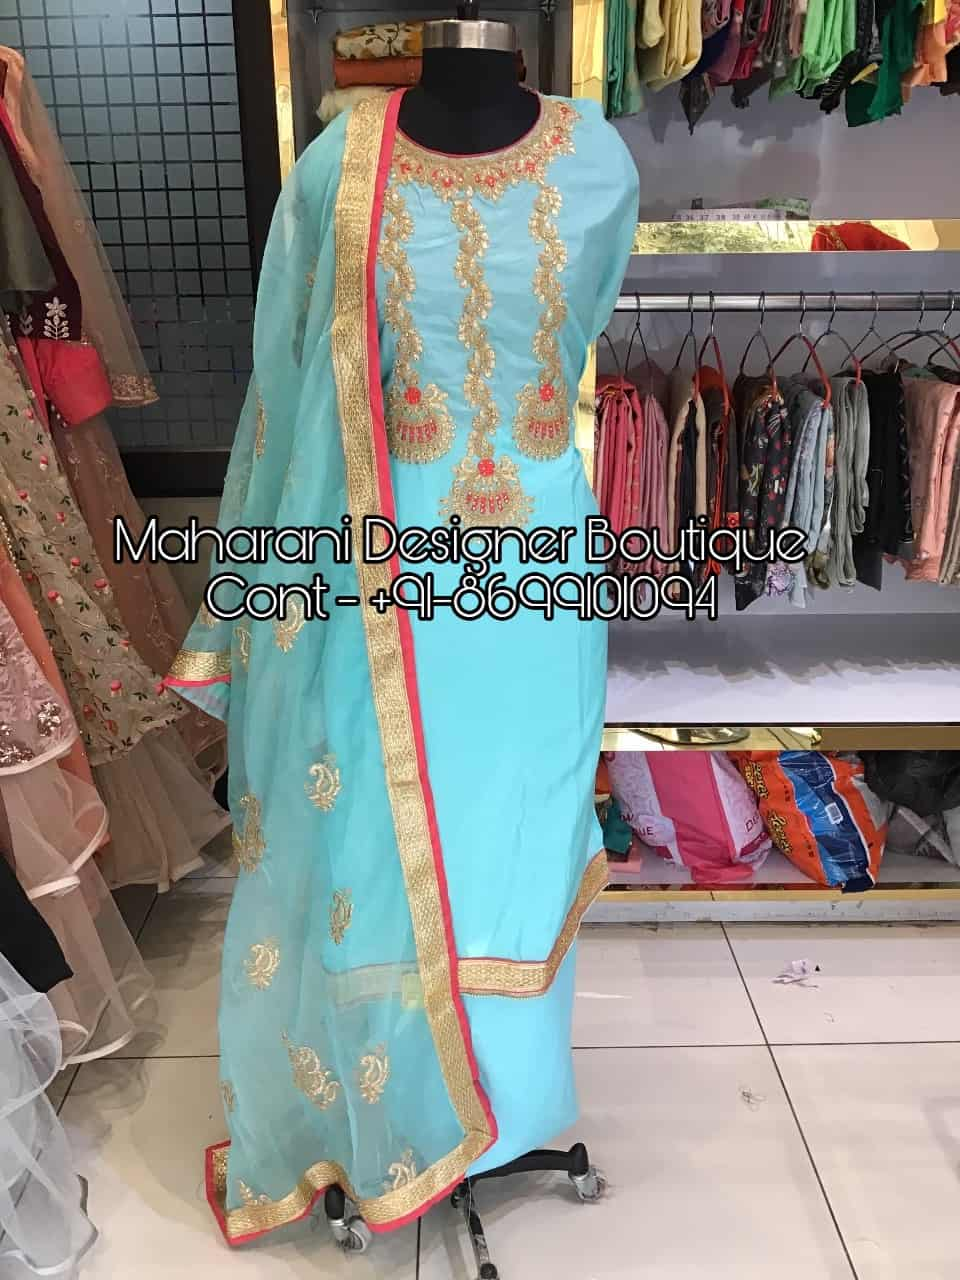 86f01b6d4c designer boutique in pathankot pathankot punjab, boutique pathankot punjab,  punjabi suits boutique in pathankot